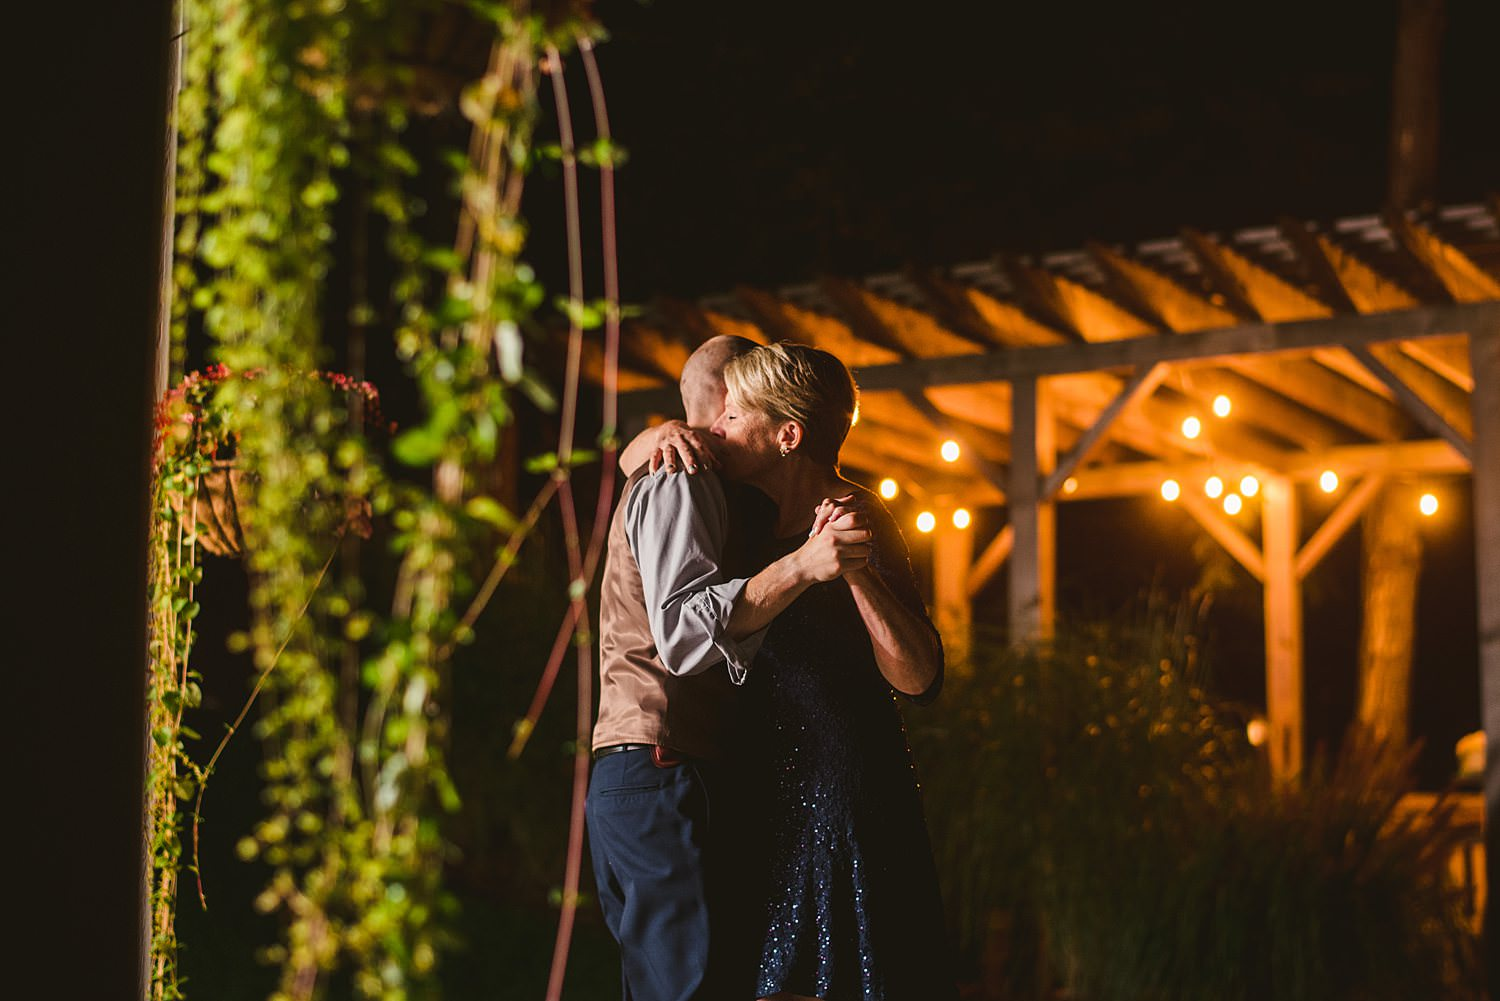 Northern Michigan Nature Backyard Elopement Intimate Wedding 184.jpg